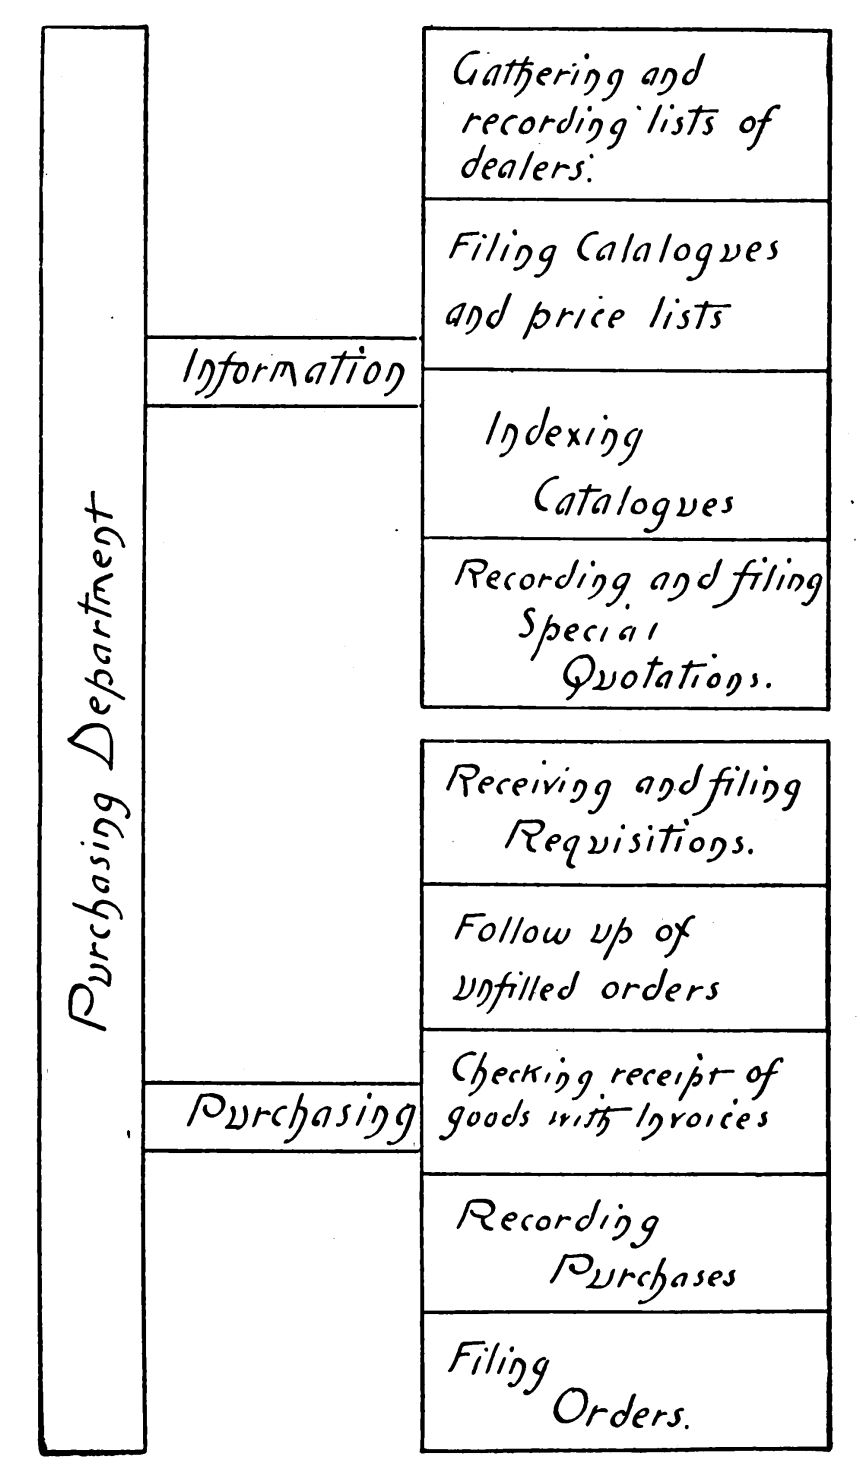 Zulu Time Chart: Chart of Purchasing Department 1905.jpg - Wikipedia,Chart